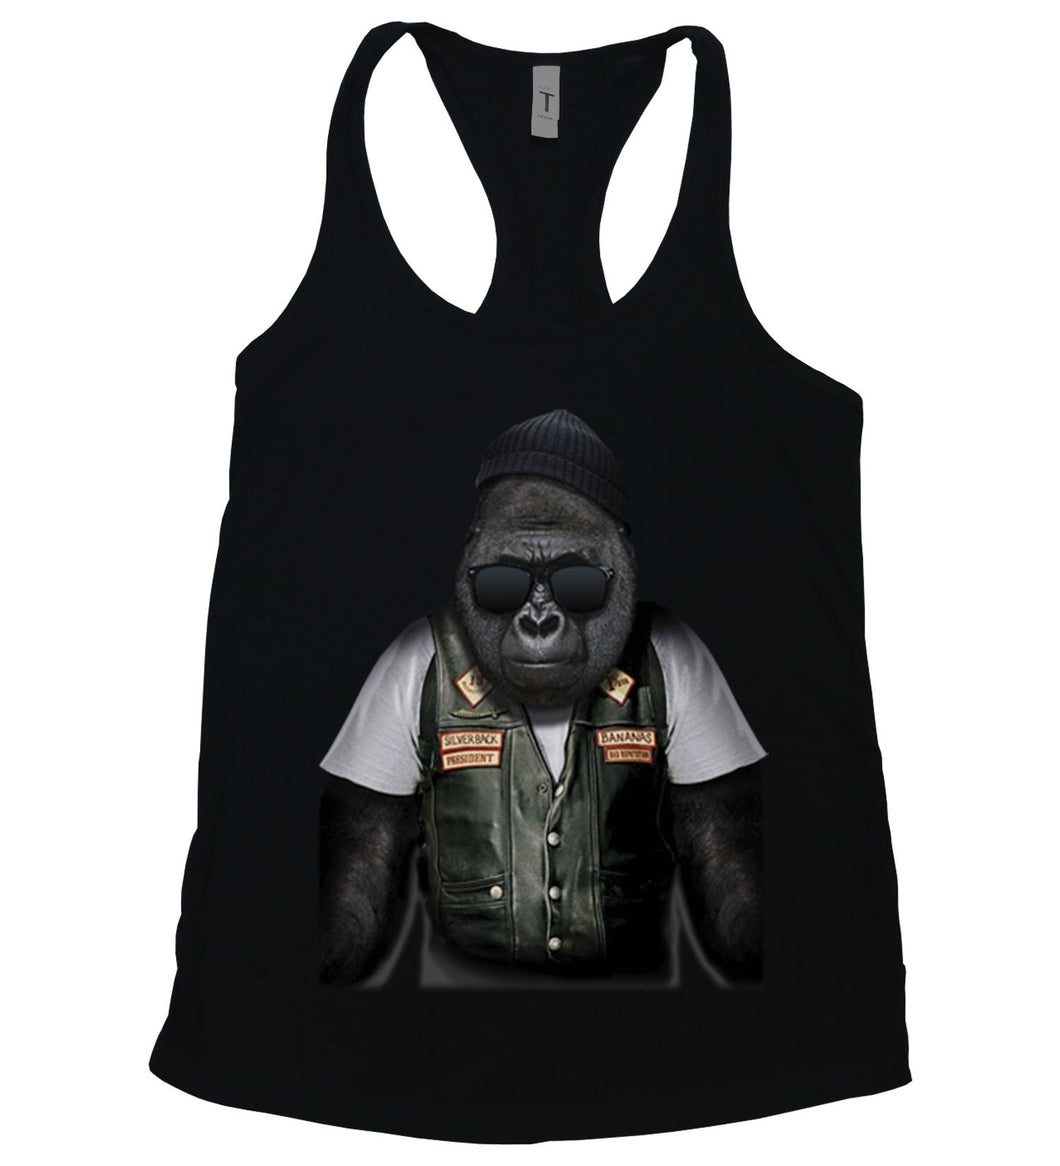 A gorilla dressed as a biker on a tank top